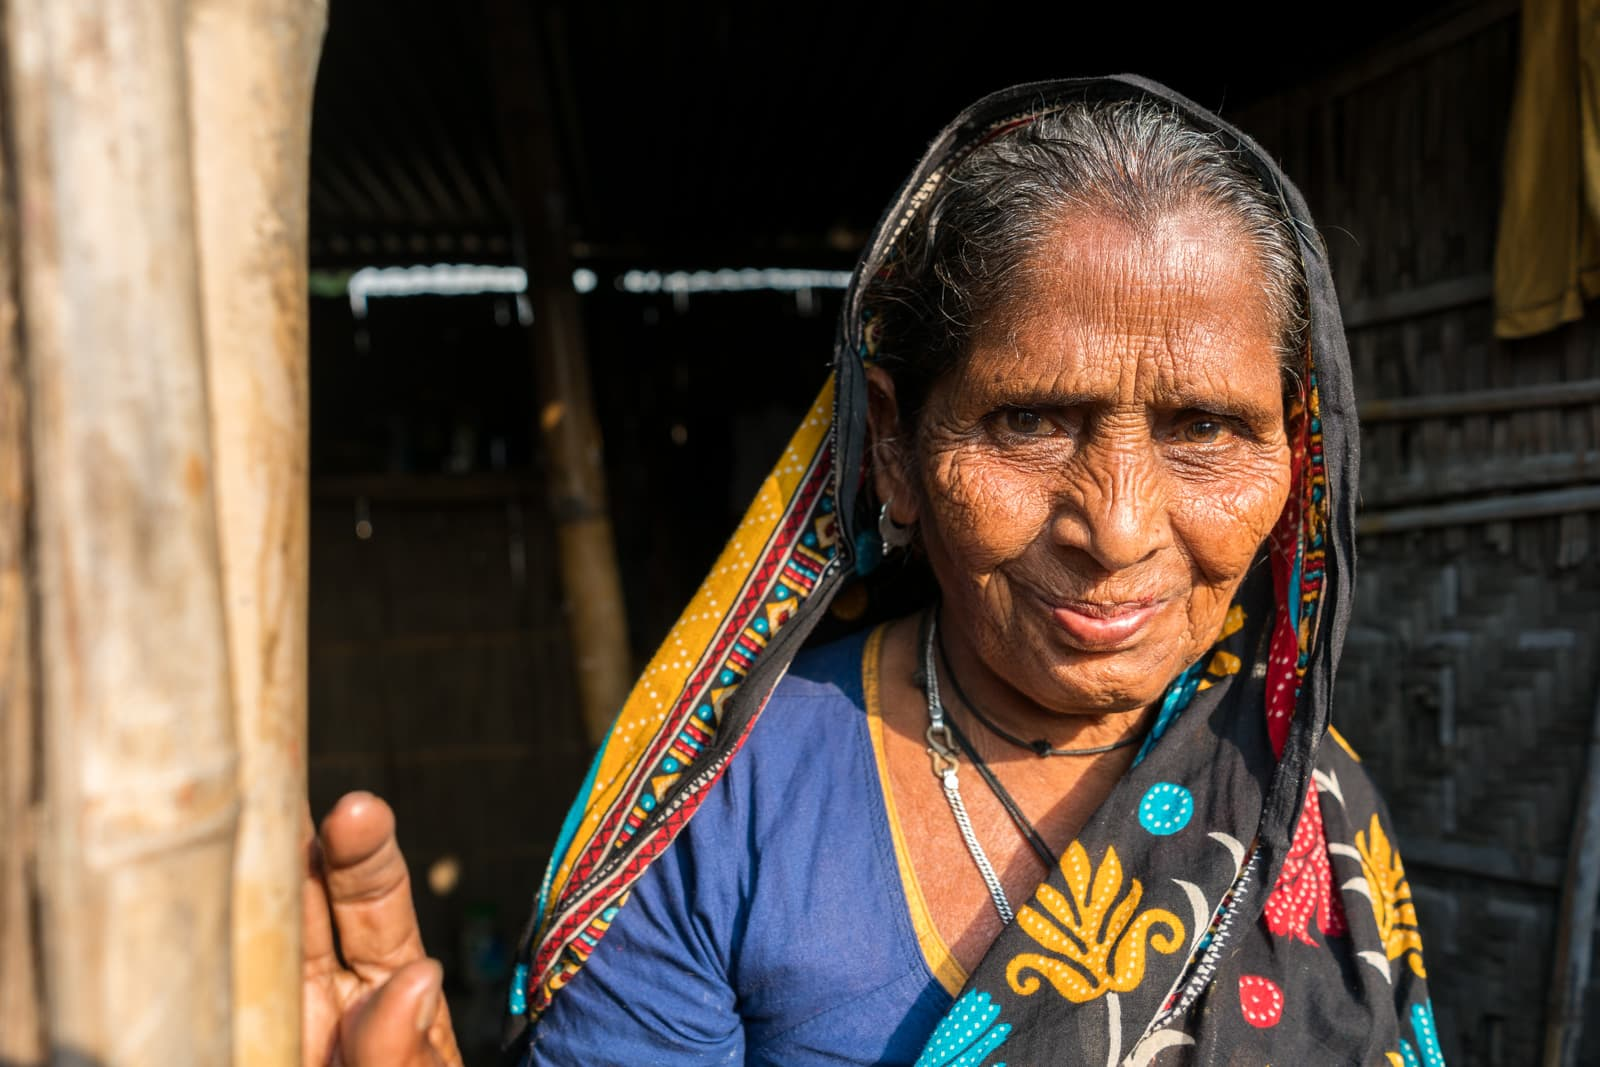 A review of a luxury river cruise in India with Assam Bengal Navigation - Old Bangladeshi woman in Khirakanta village - Lost With Purpose travel blog